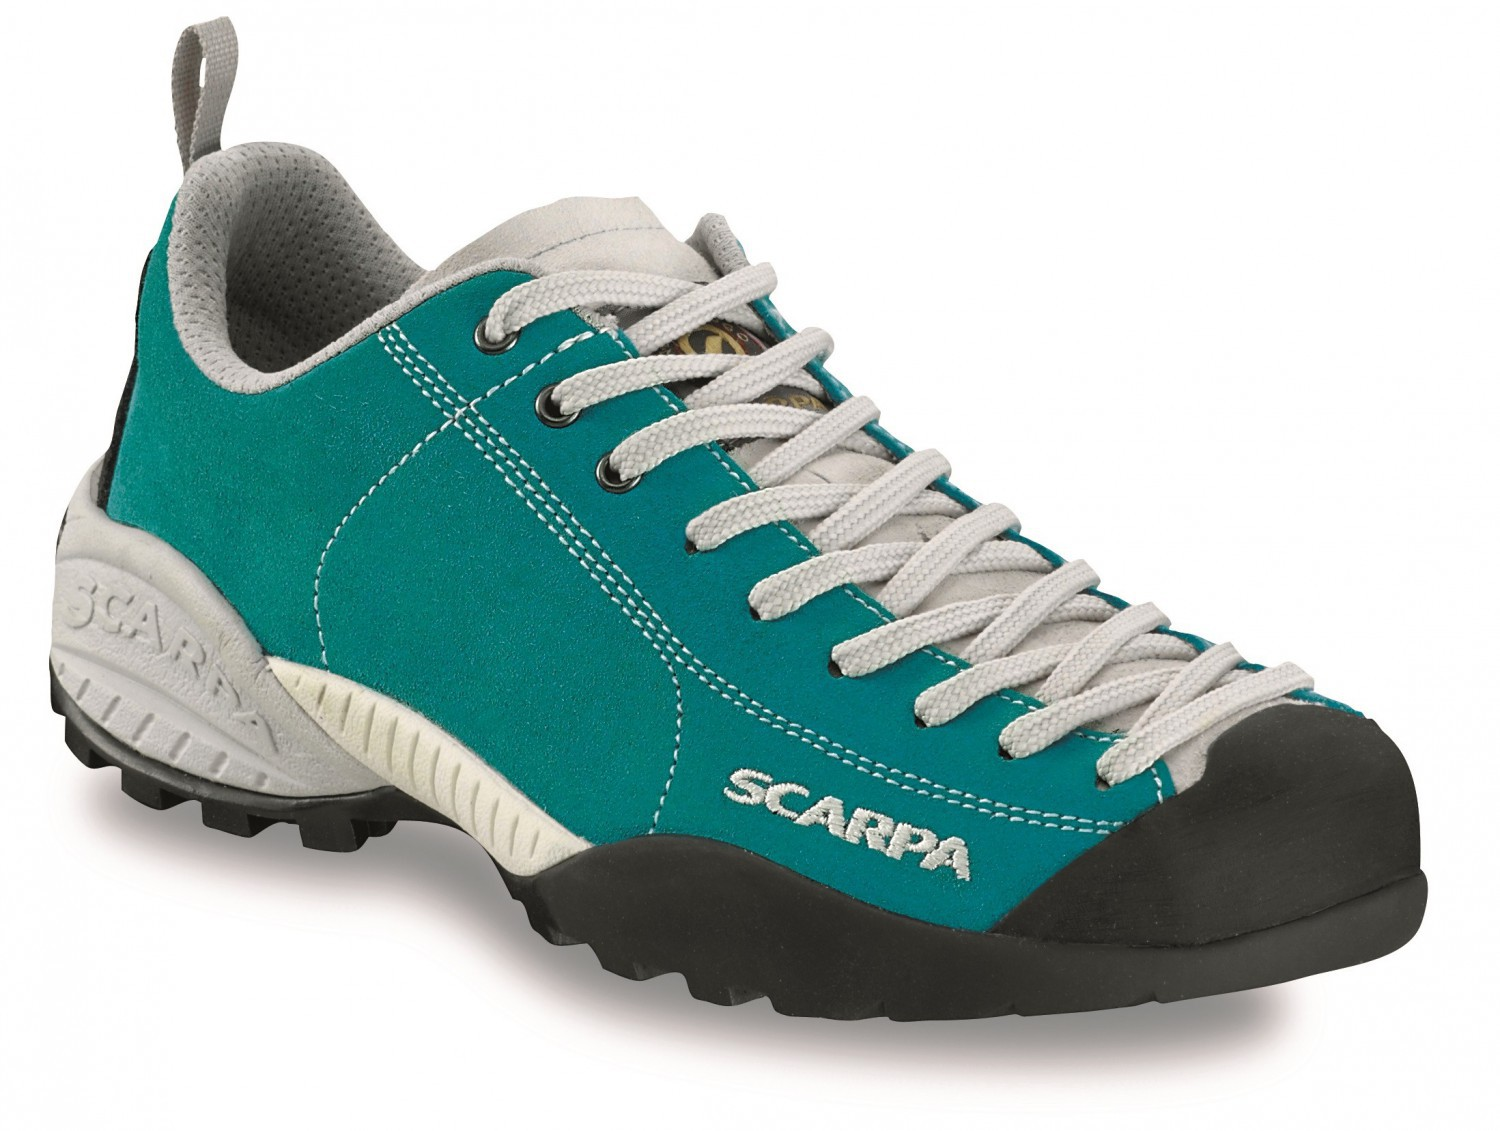 Scarpa - Mojito Curacao - Approach Shoes - 41,5